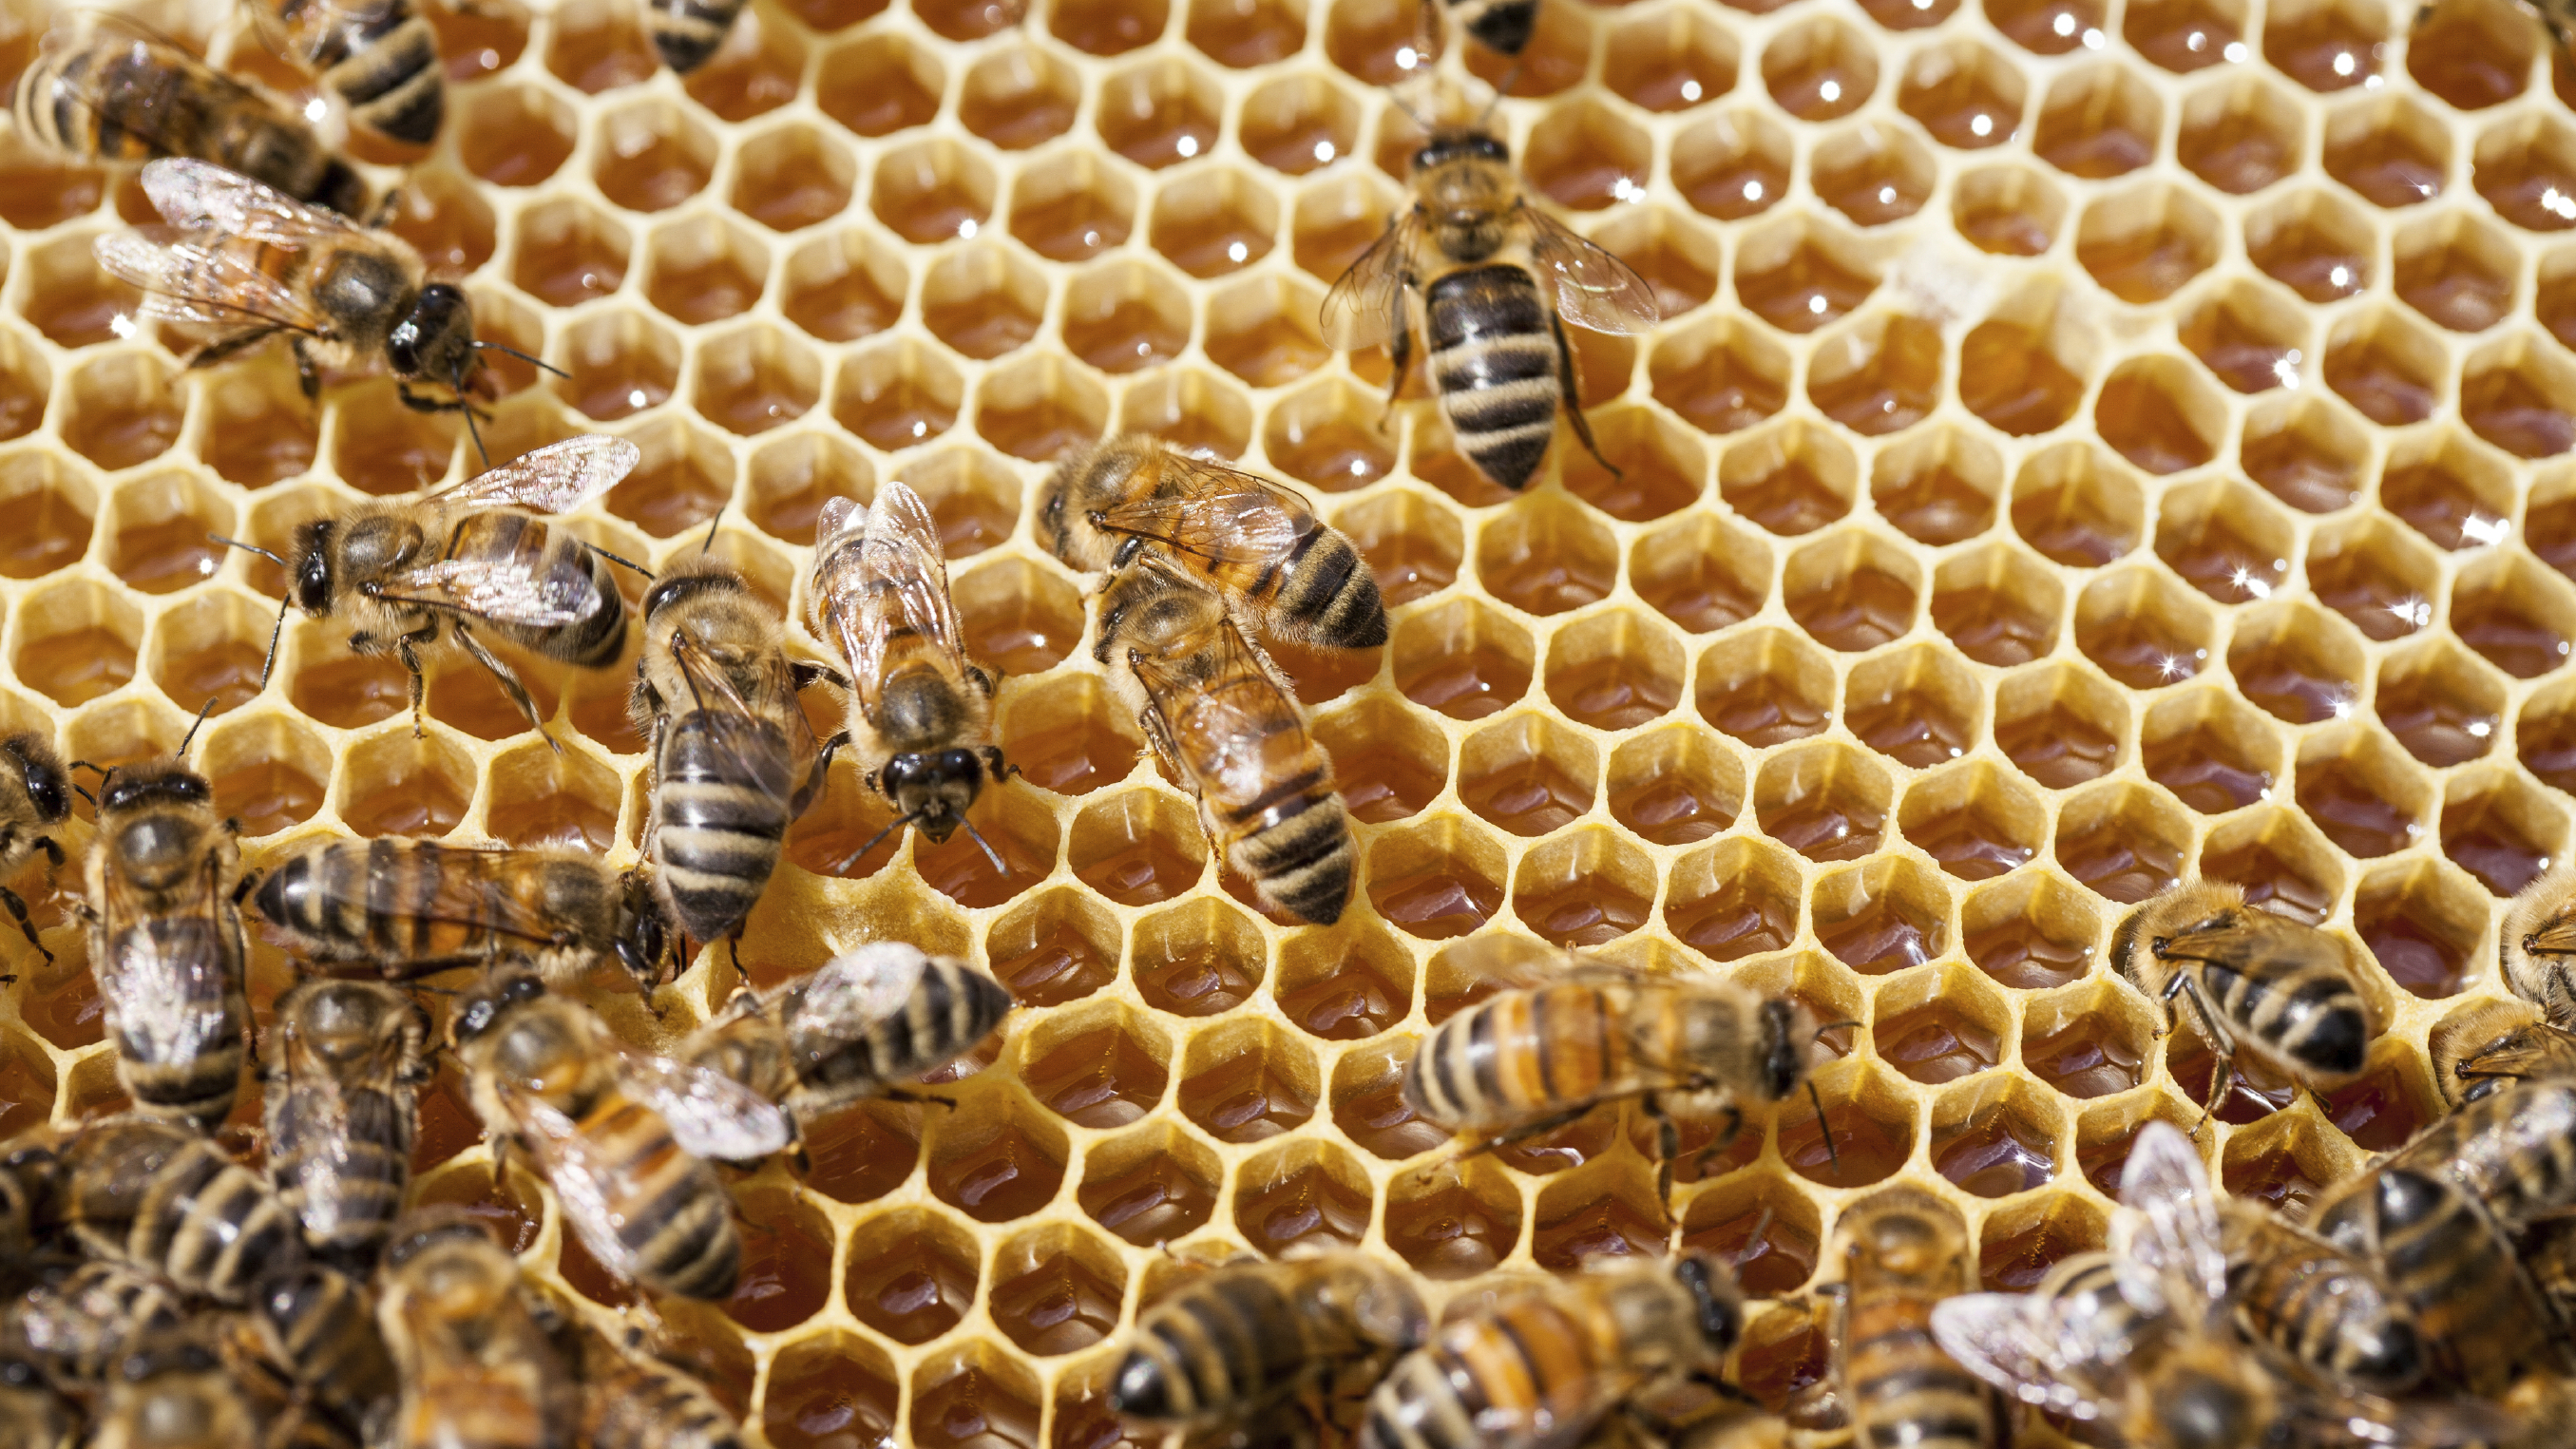 Biologist Says Promoting Diversity Is Key To 'Keeping The Bees'